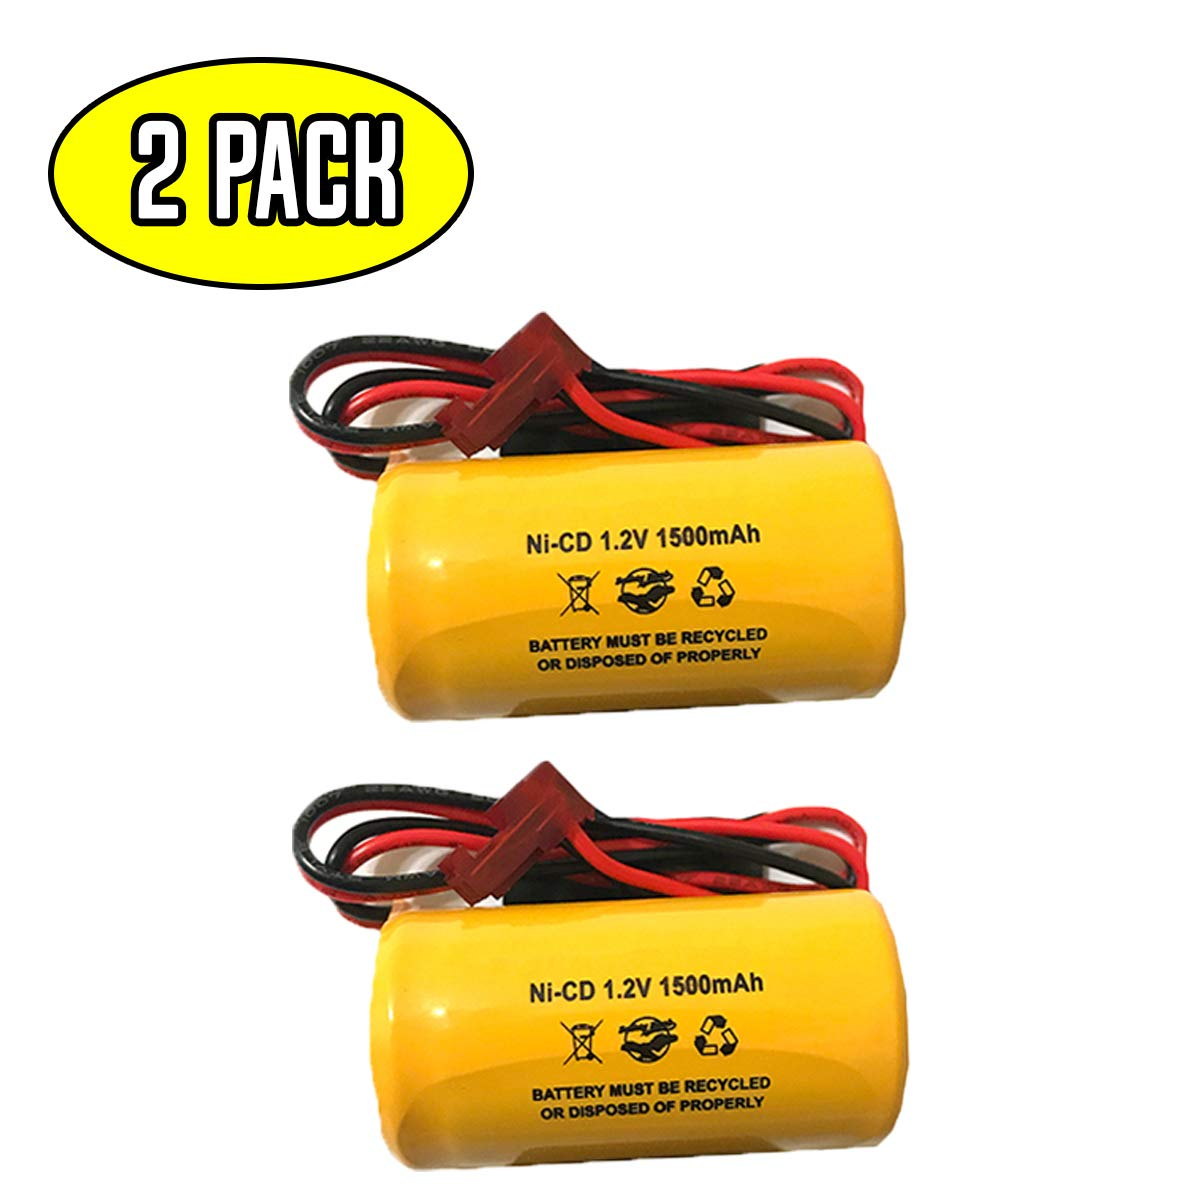 (2 Pack) ELB1P201NB Lithonia ELB0320 1.2v 1500mah NiCad Battery Pack Replacement Exit Sign Emergency Light ELB1P201N2 ELB1P2901N ELB1210N ELB1P201N ELB-1P201NB